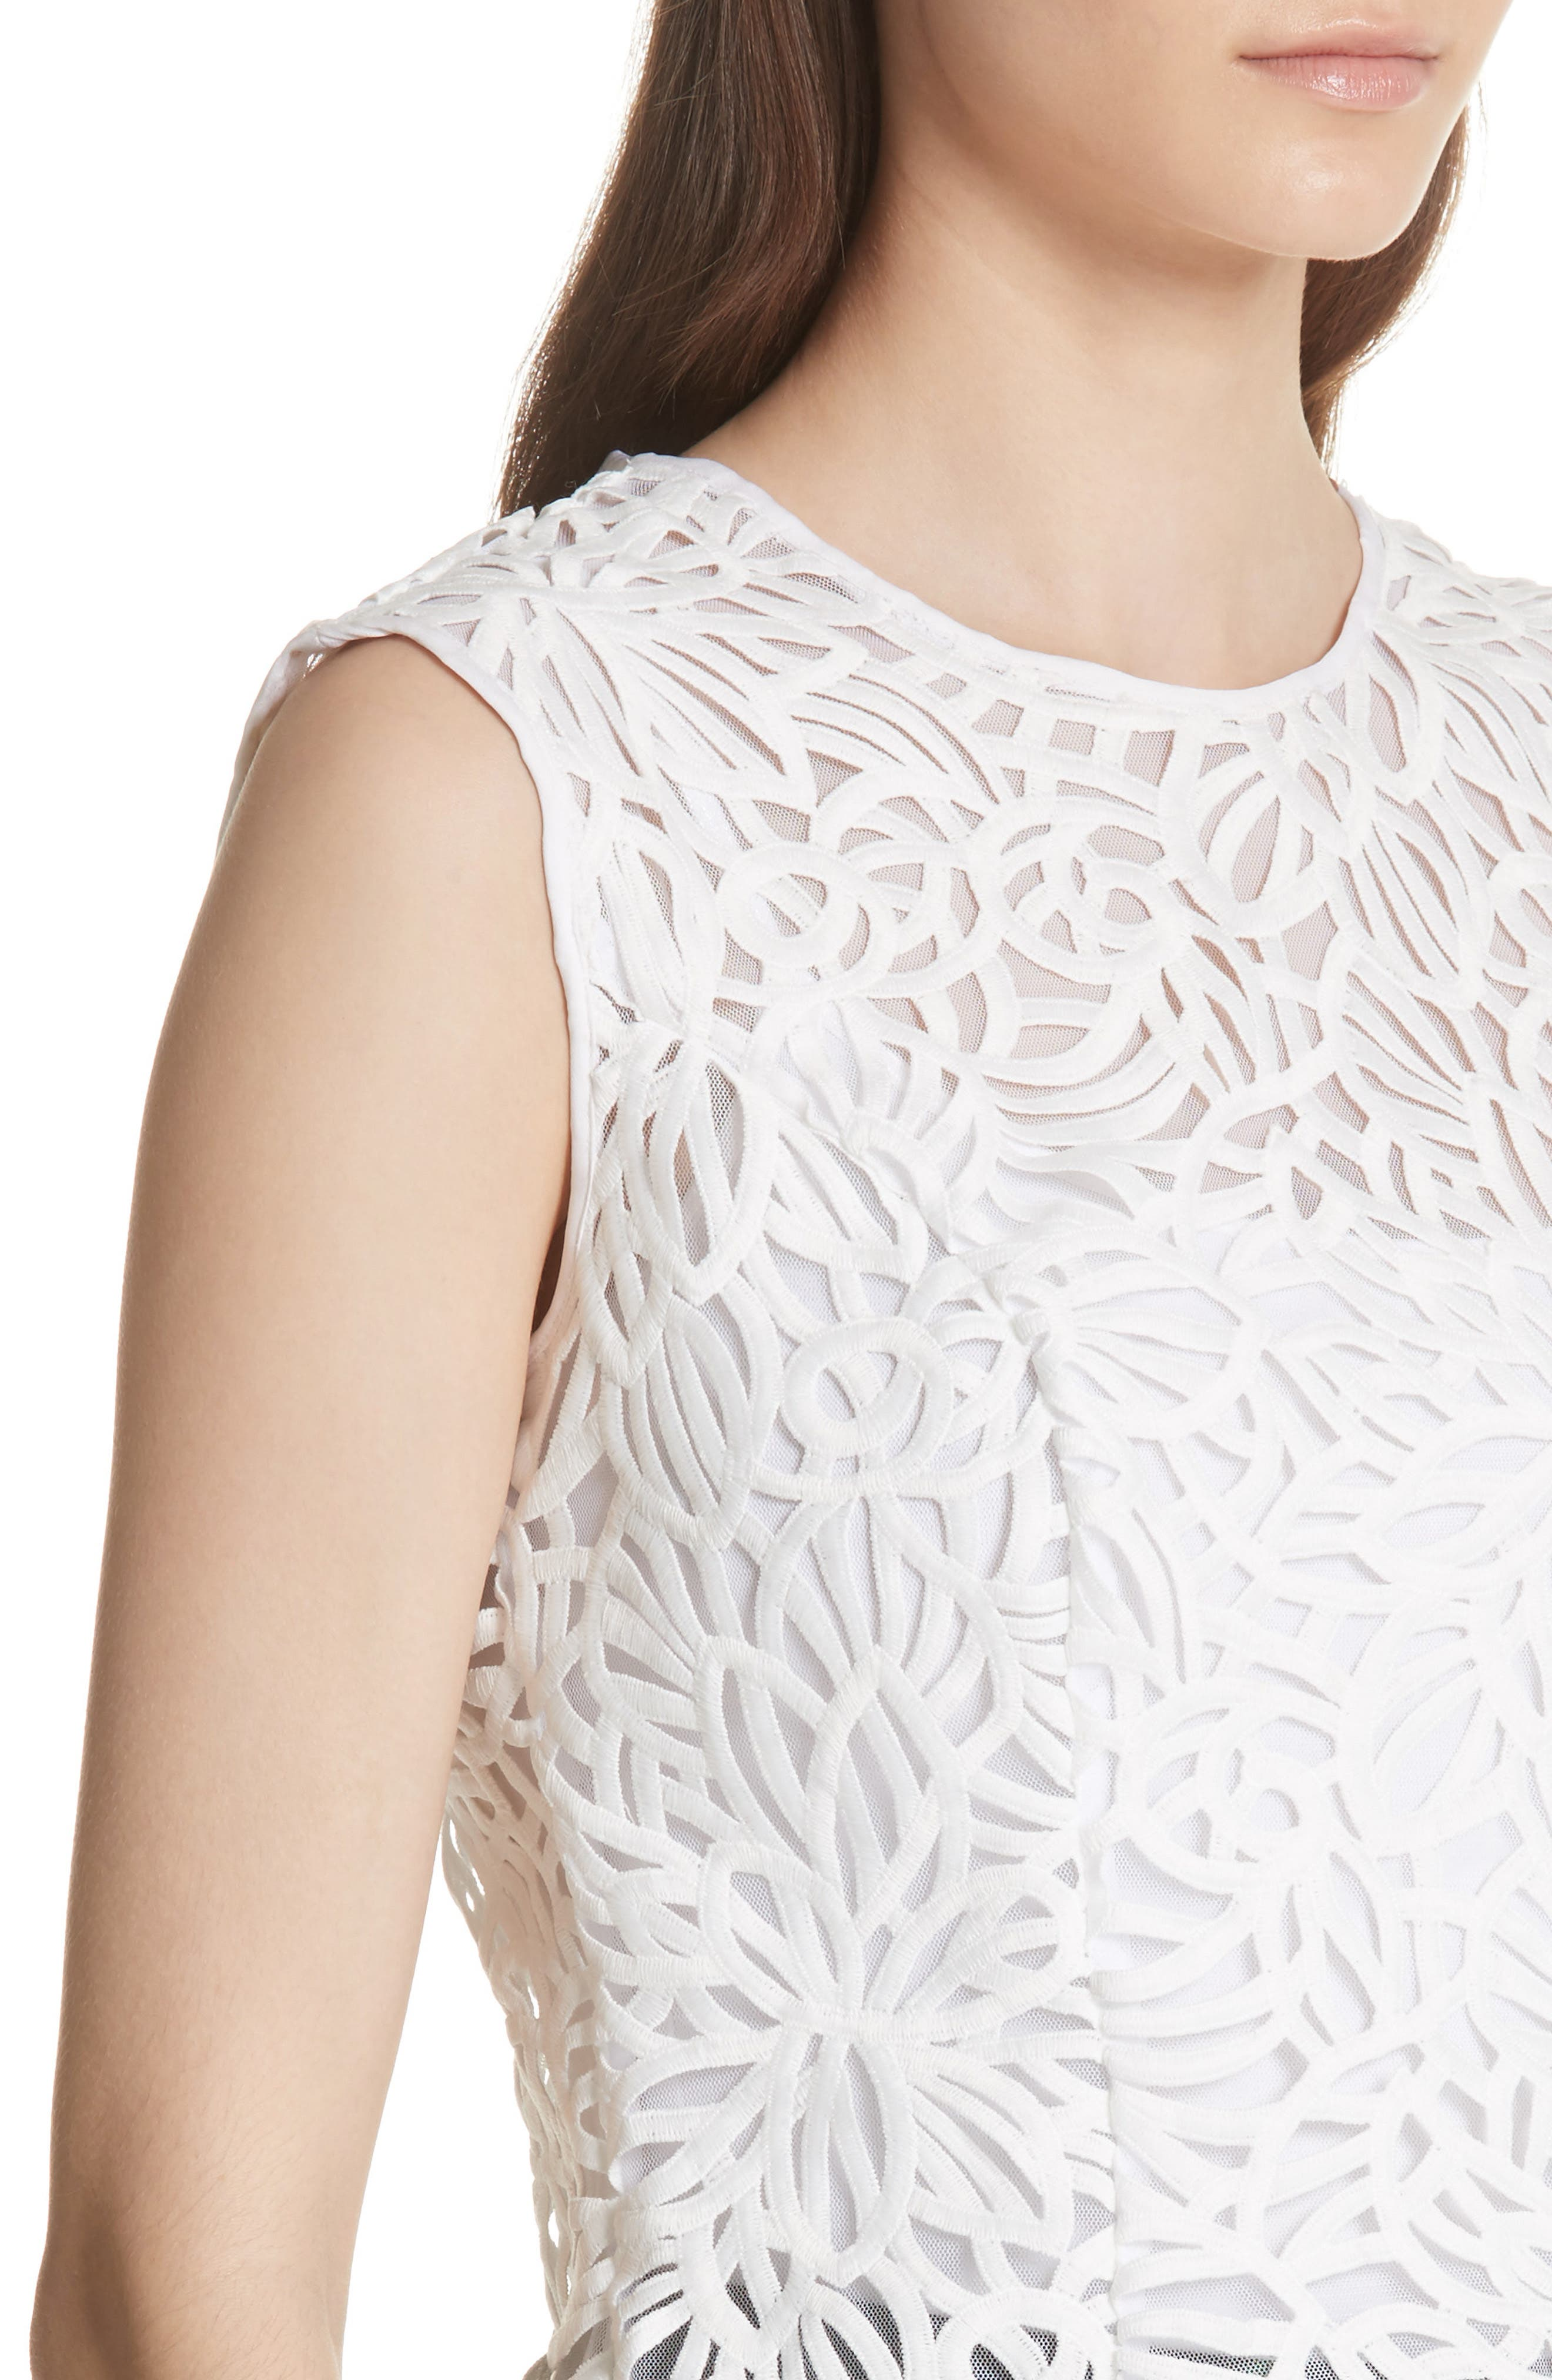 Irena Lace Top,                             Alternate thumbnail 4, color,                             150